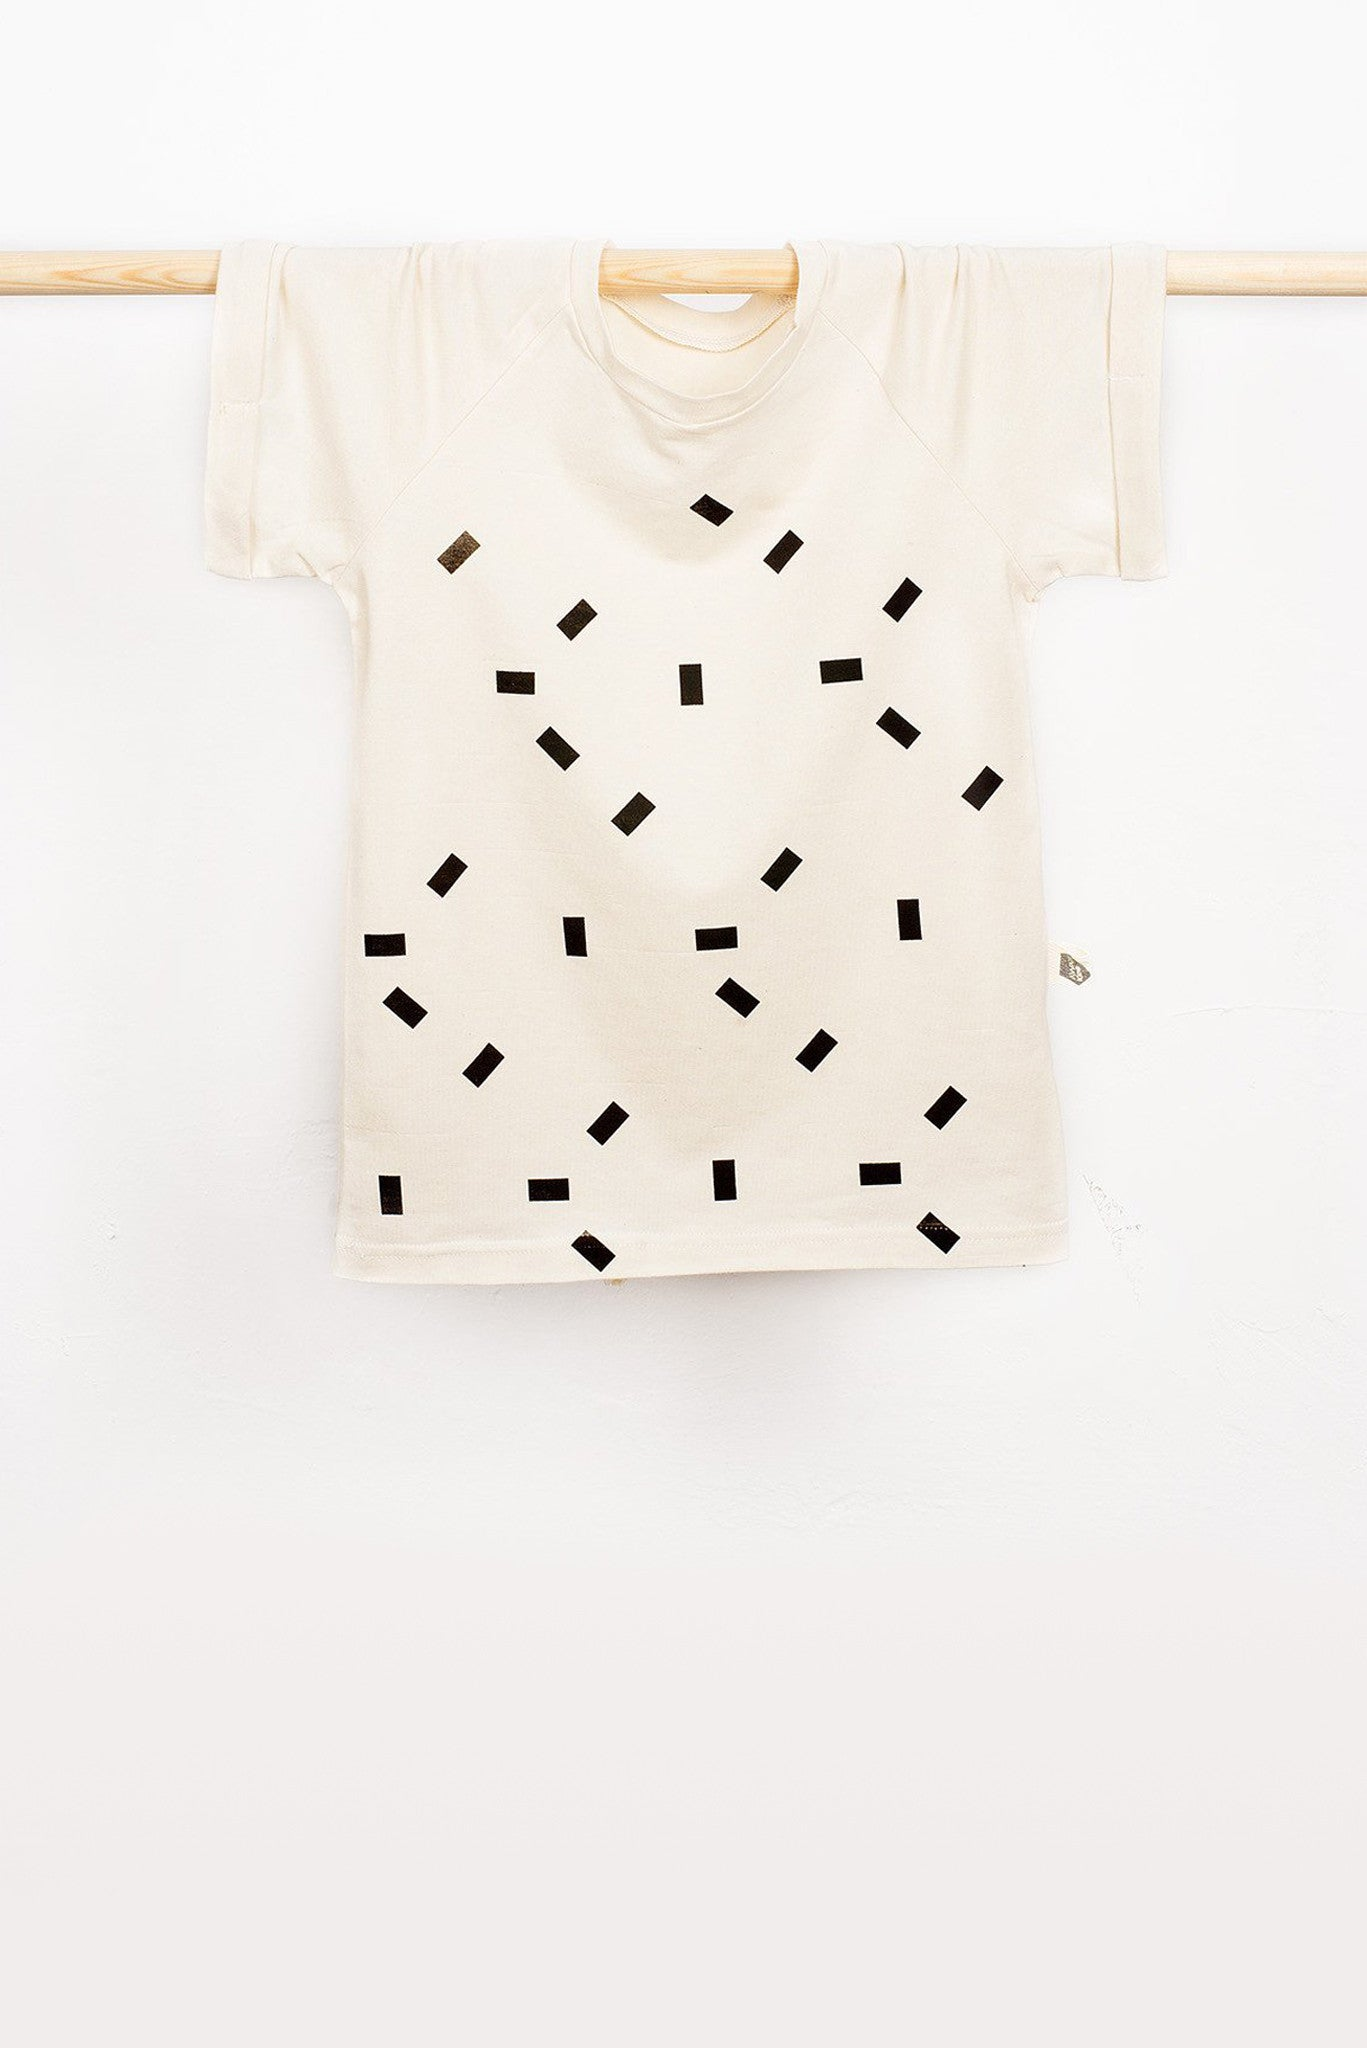 T-SHIRT WITH BLACK RECTANGLES PATTERN